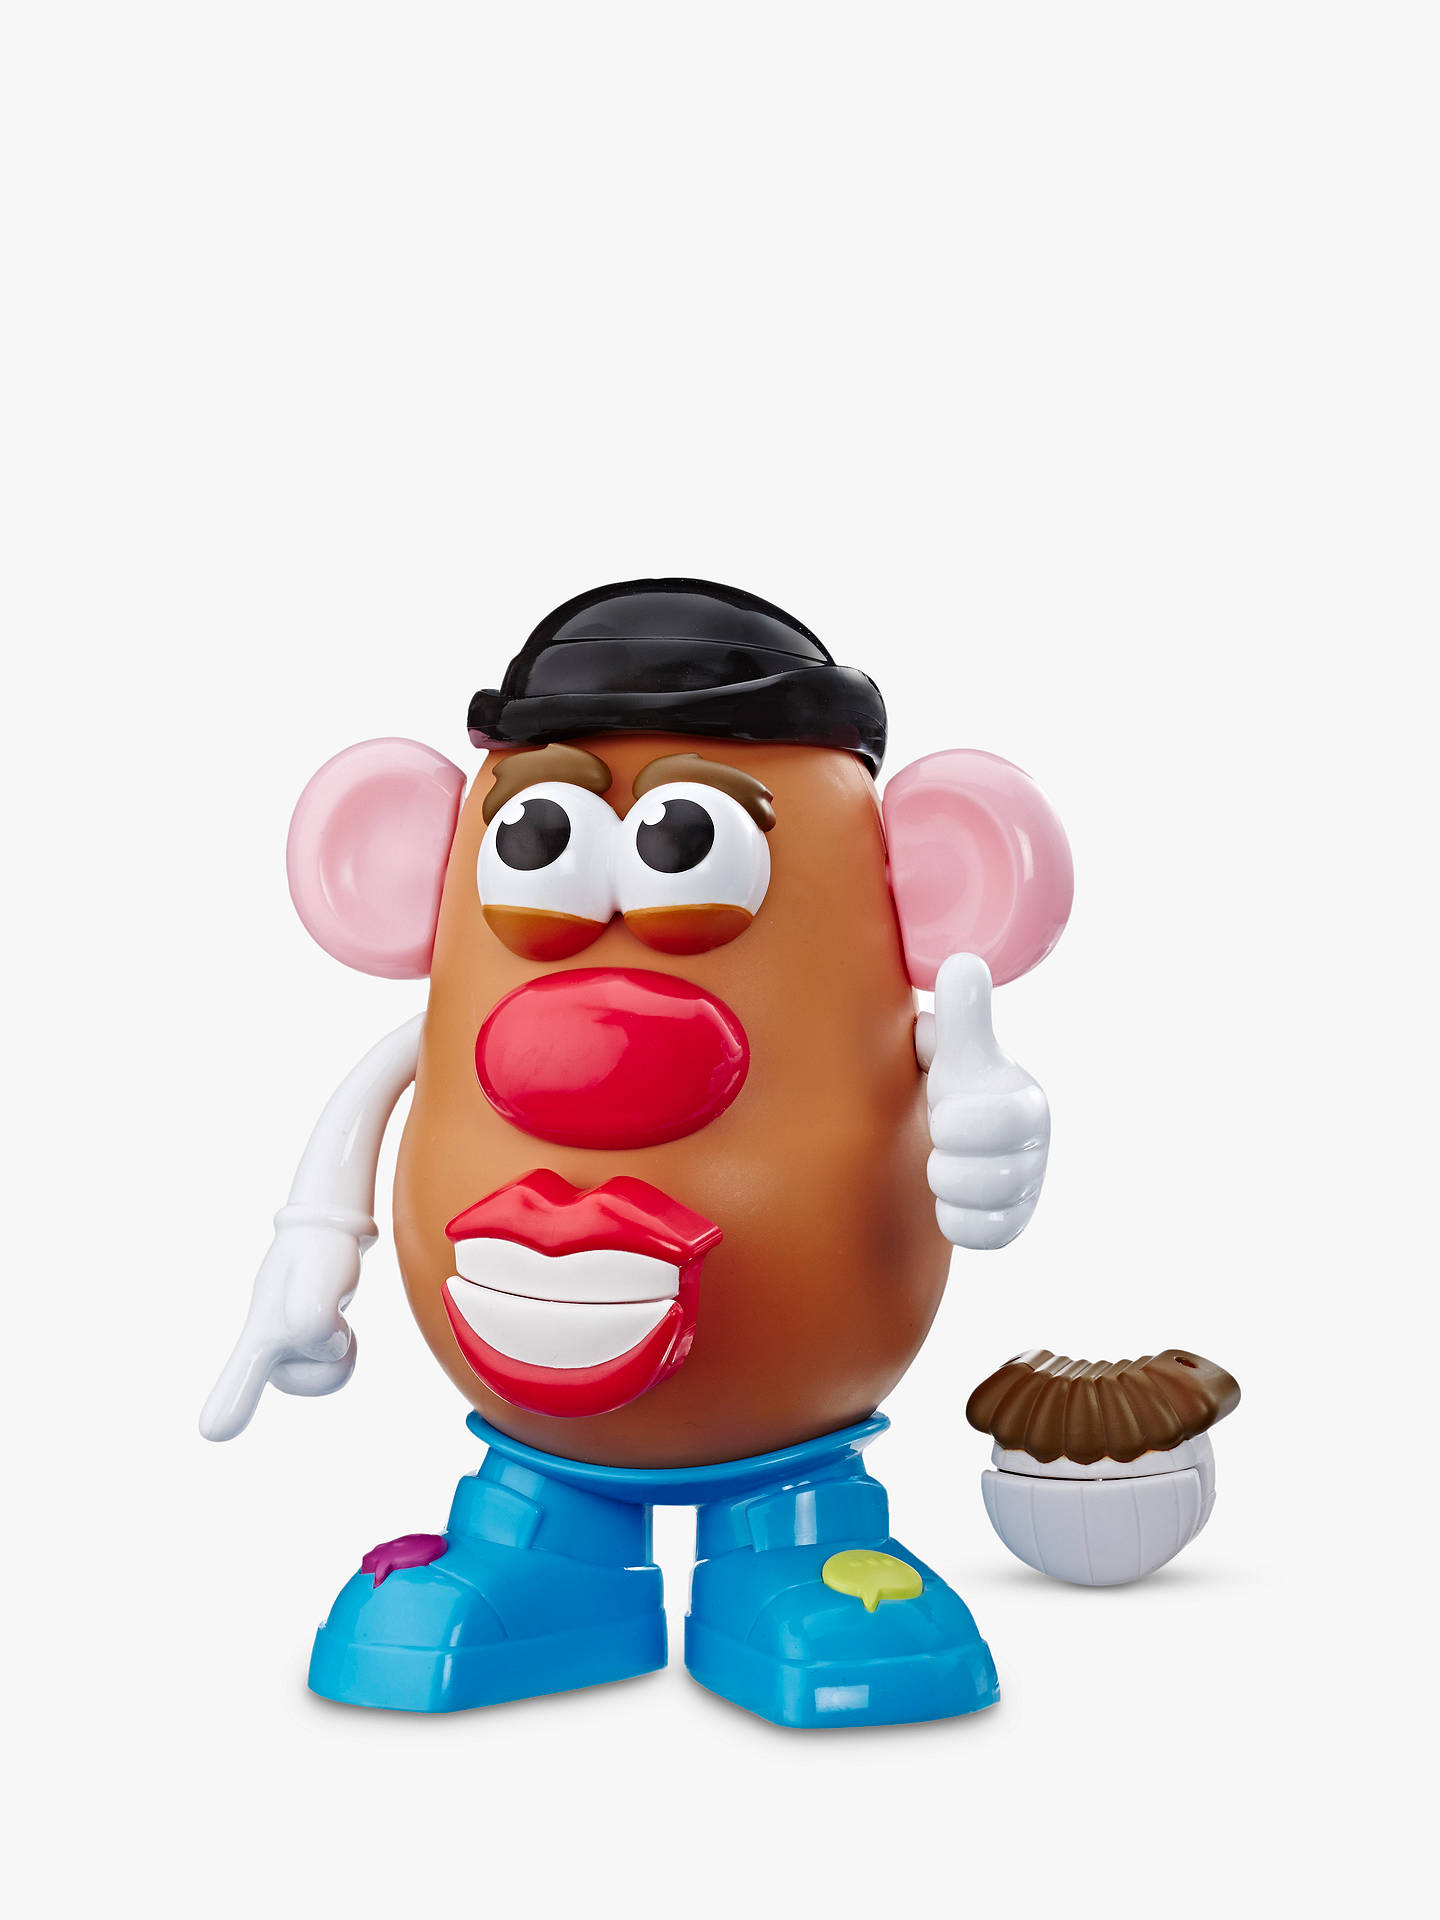 Disney Pixar Toy Story Mr Potato Head Moving Lips